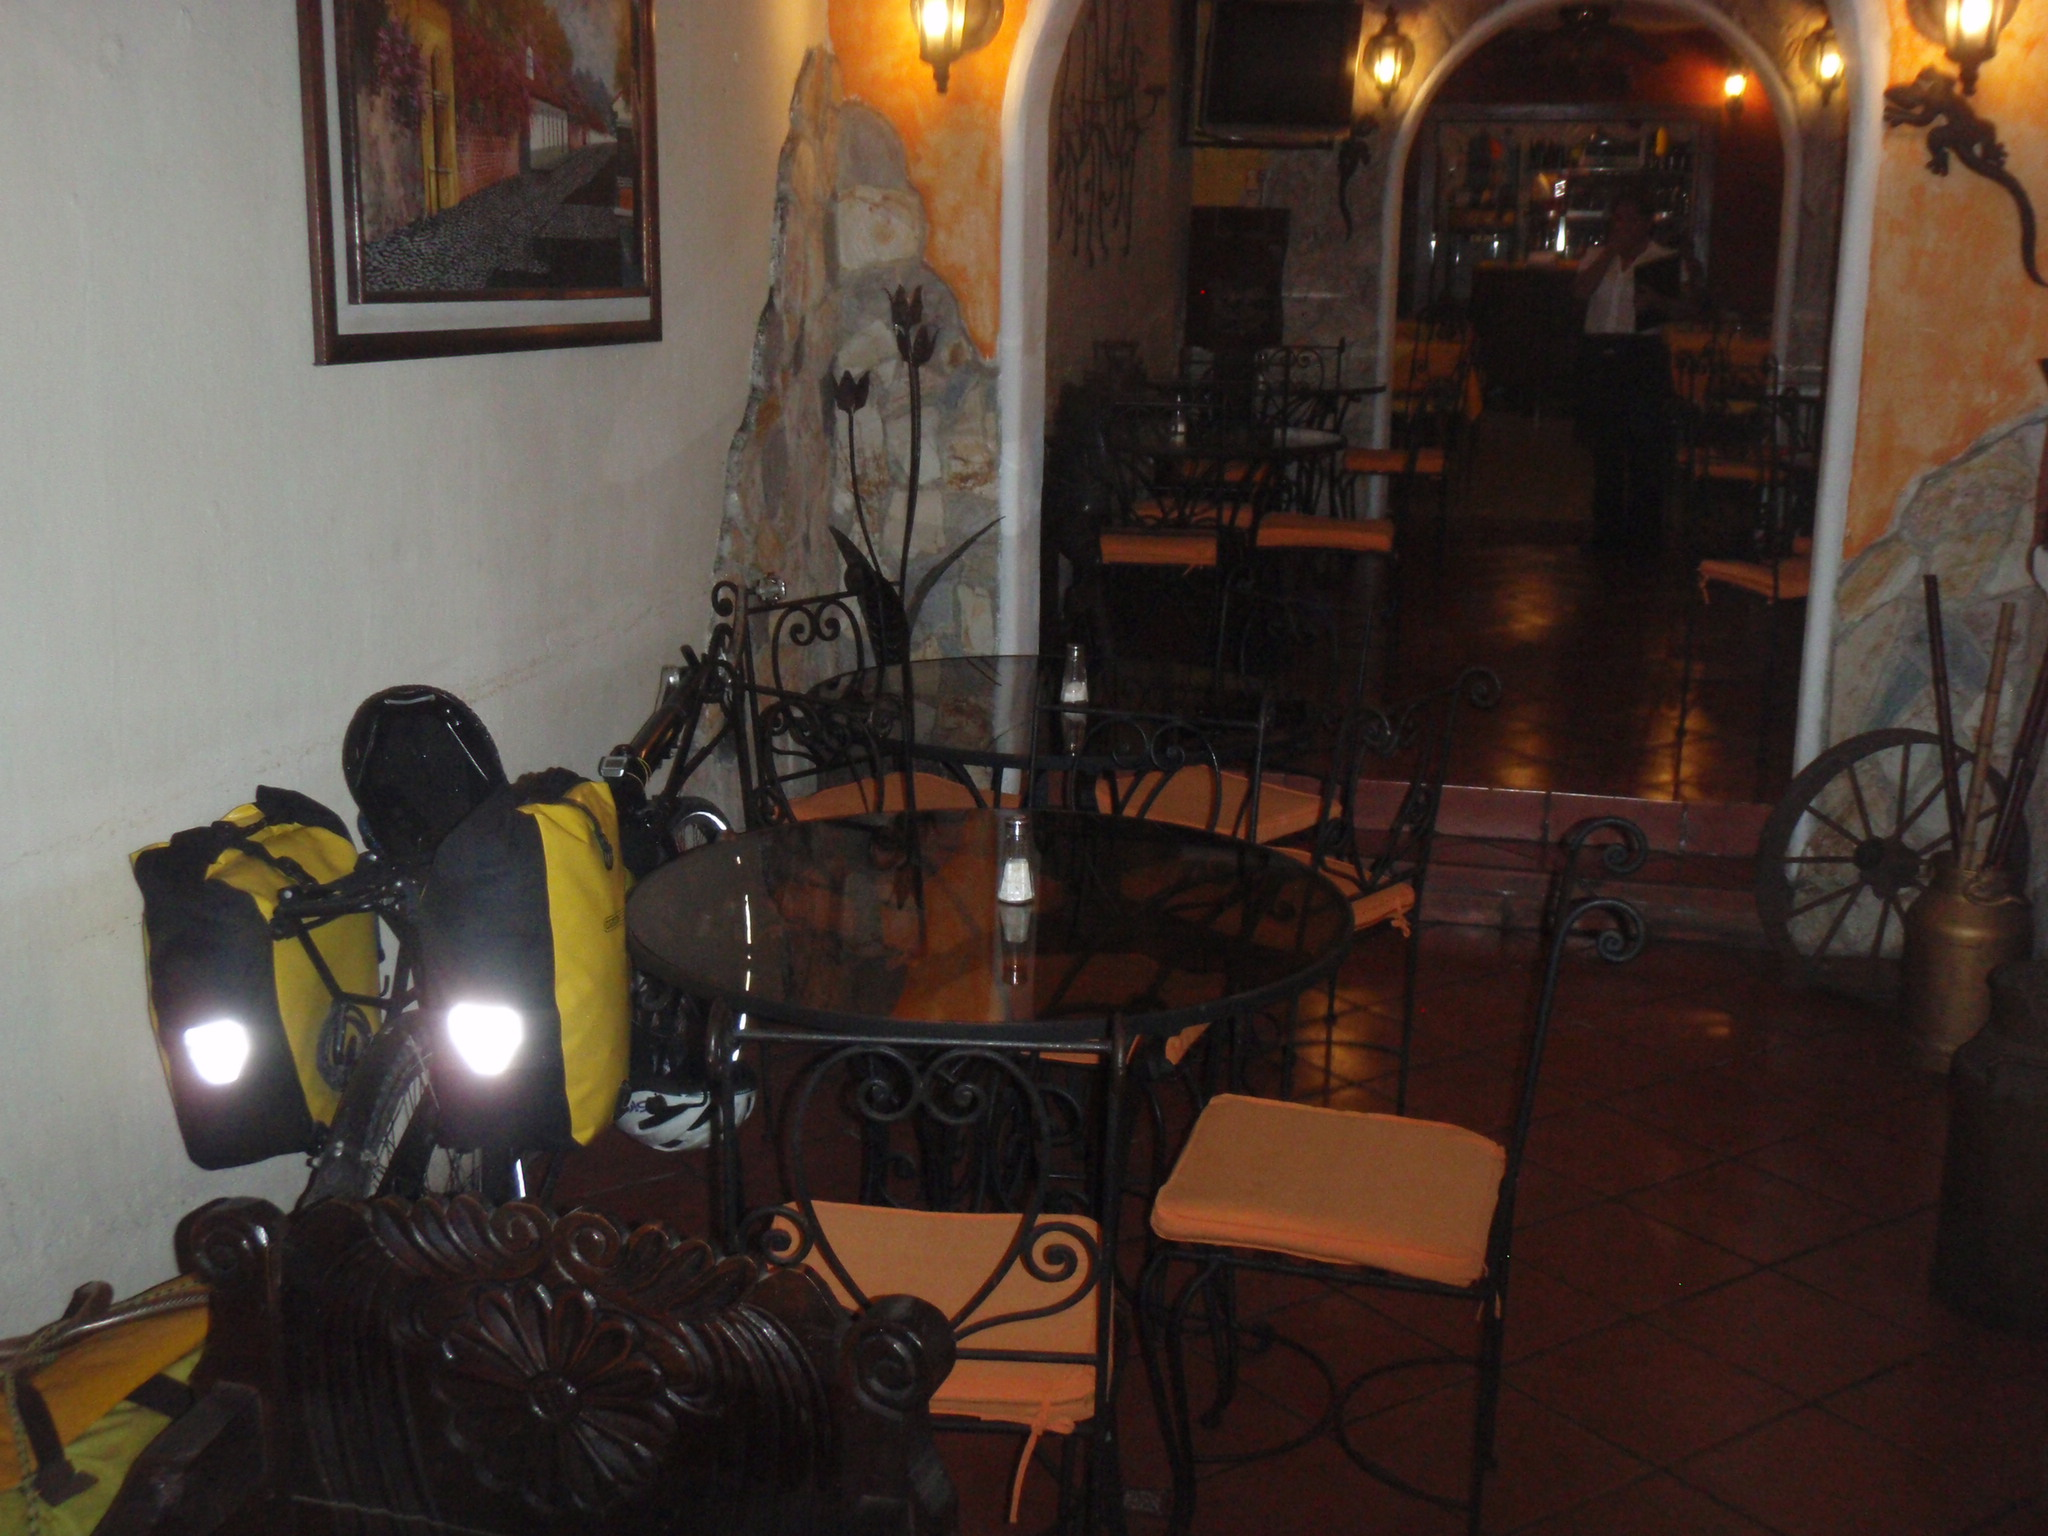 Bike allowed in restaurant (recumbents only)